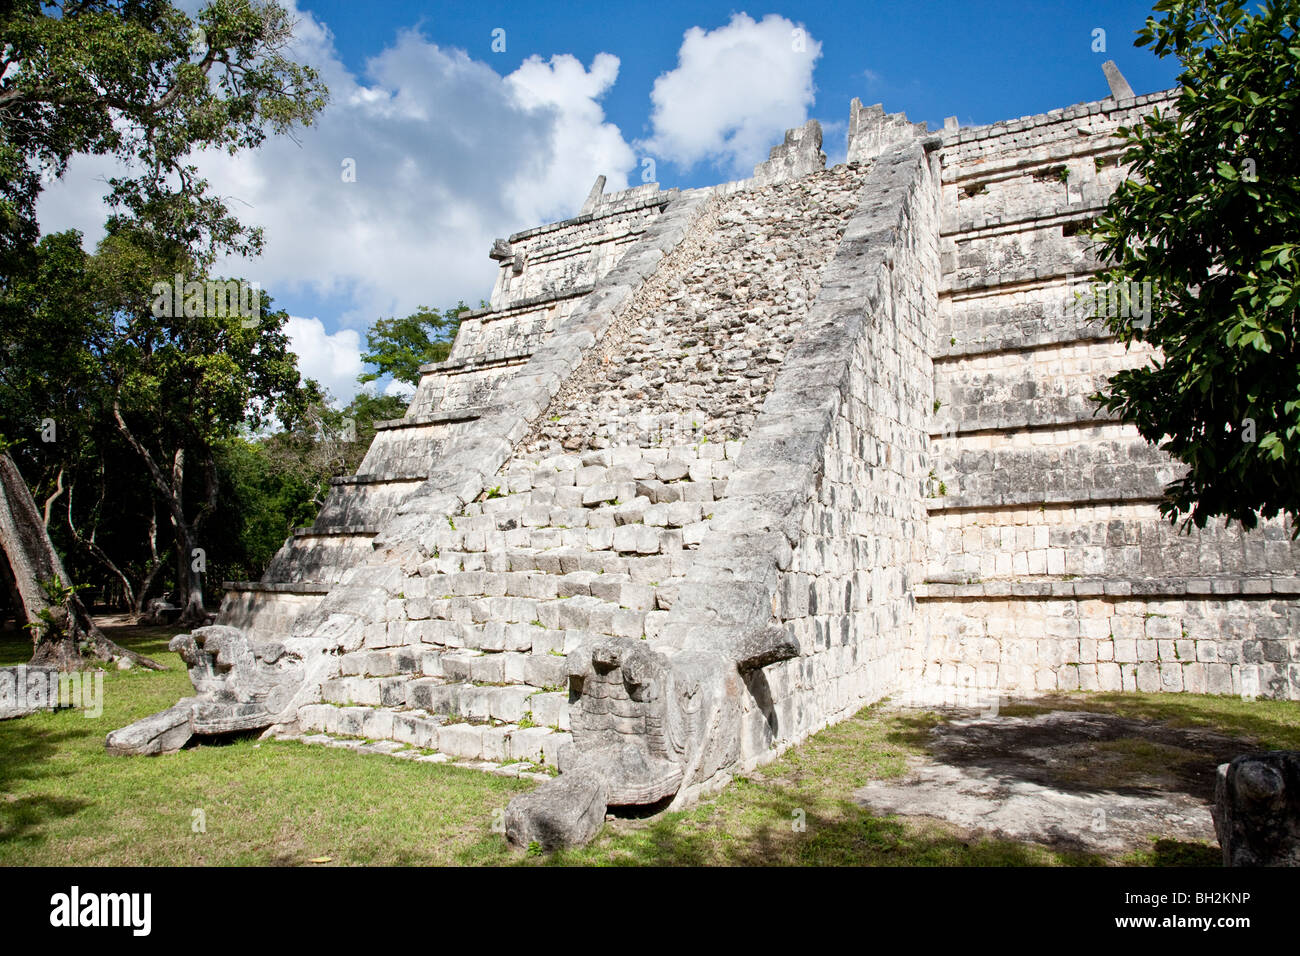 The Ossuary or Tomb Of The Great Priest, Chichen Itza Archaeological Site Yucatan Mexico. Stock Photo